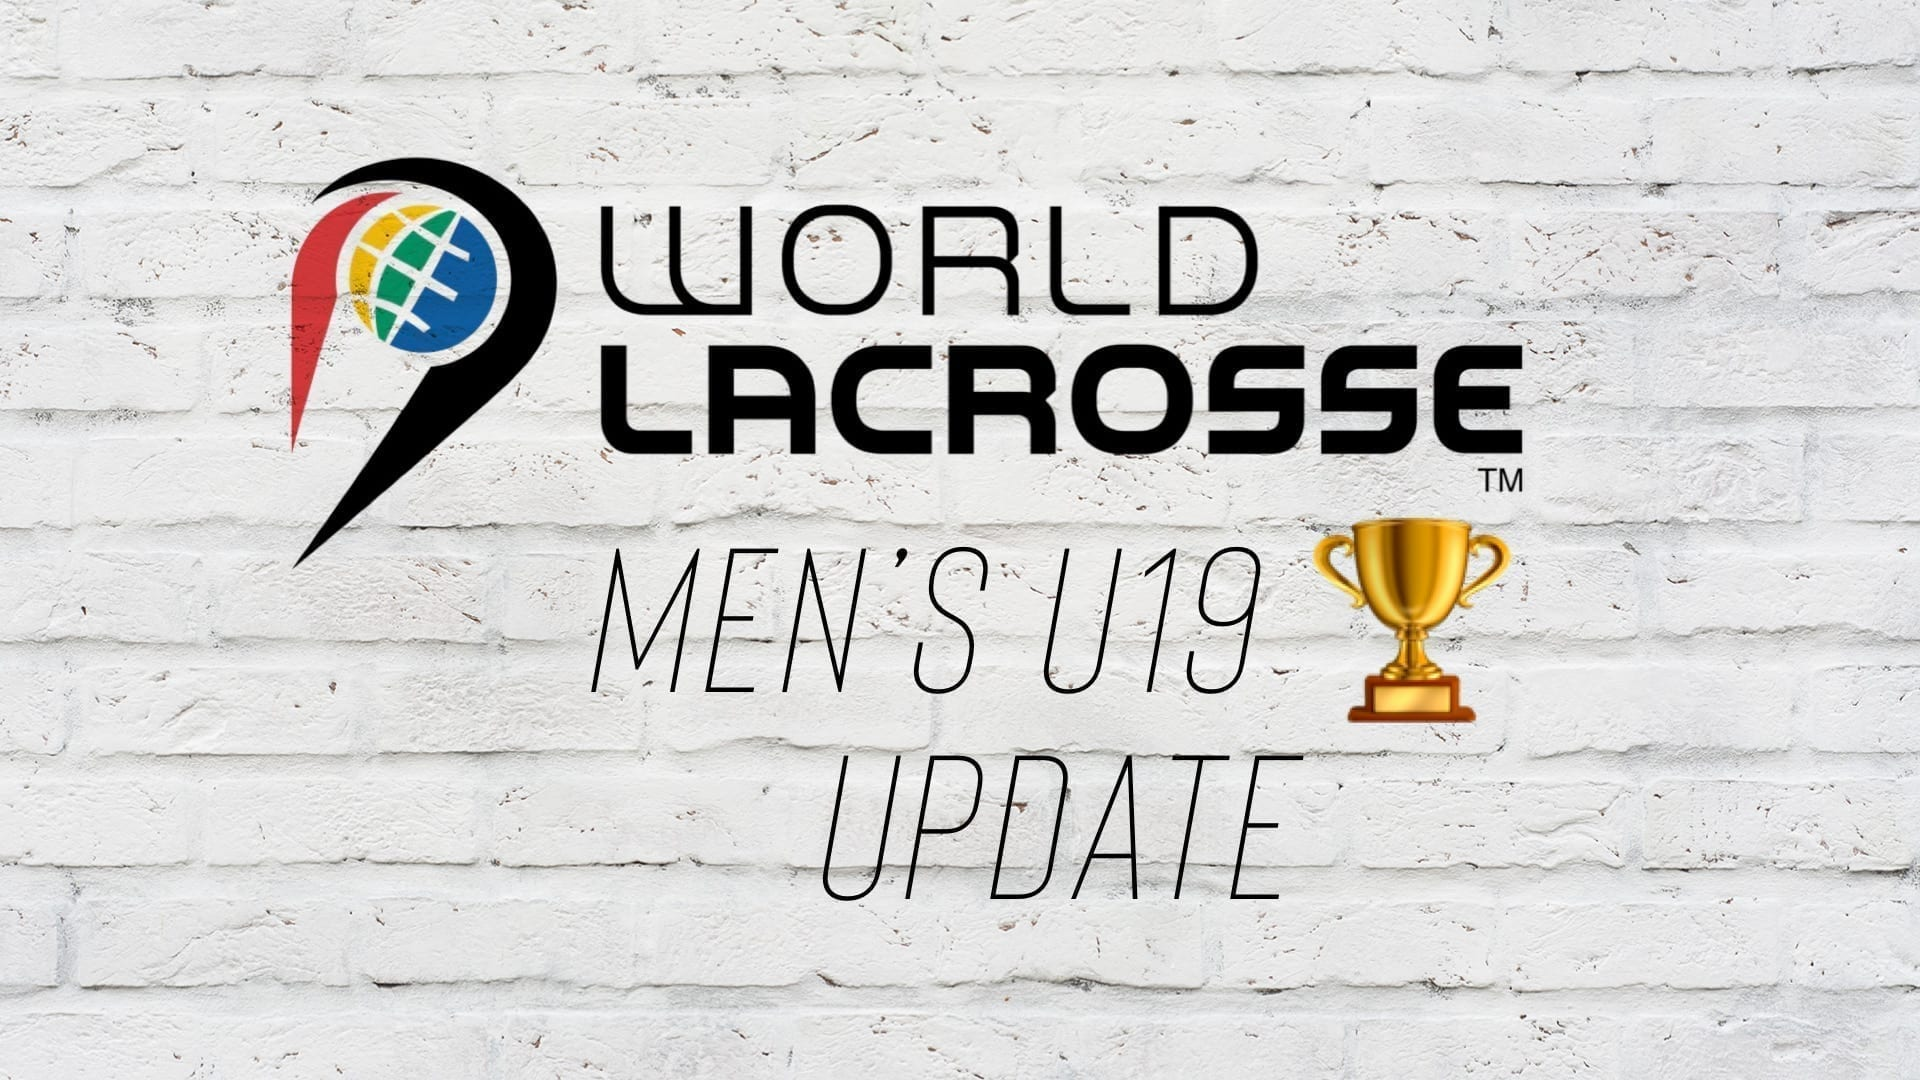 men's u19 world championship lacrosse